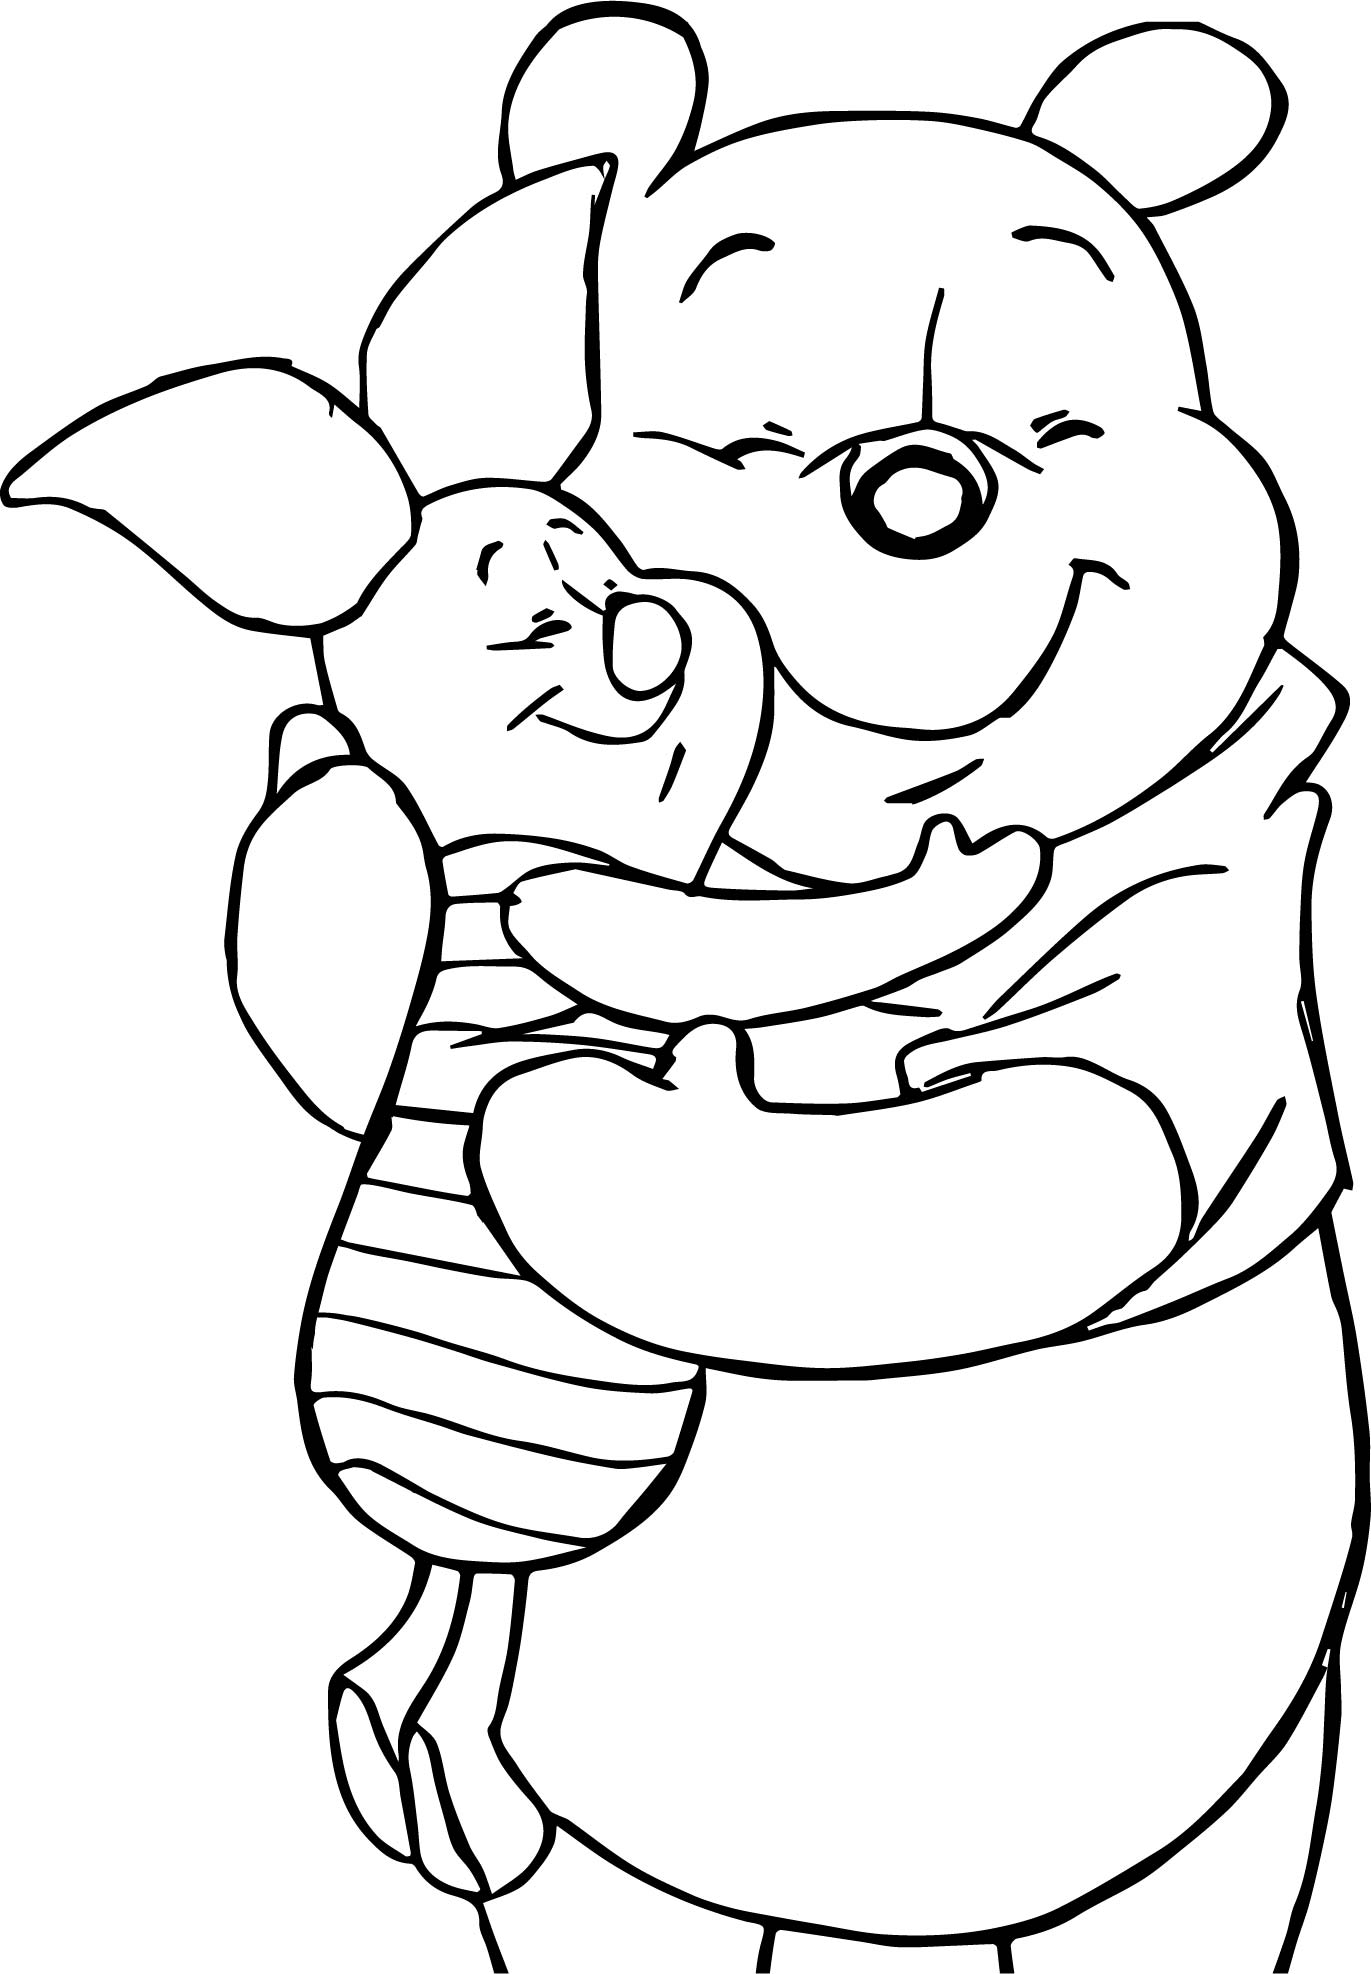 Rabbit winnie the pooh coloring pages